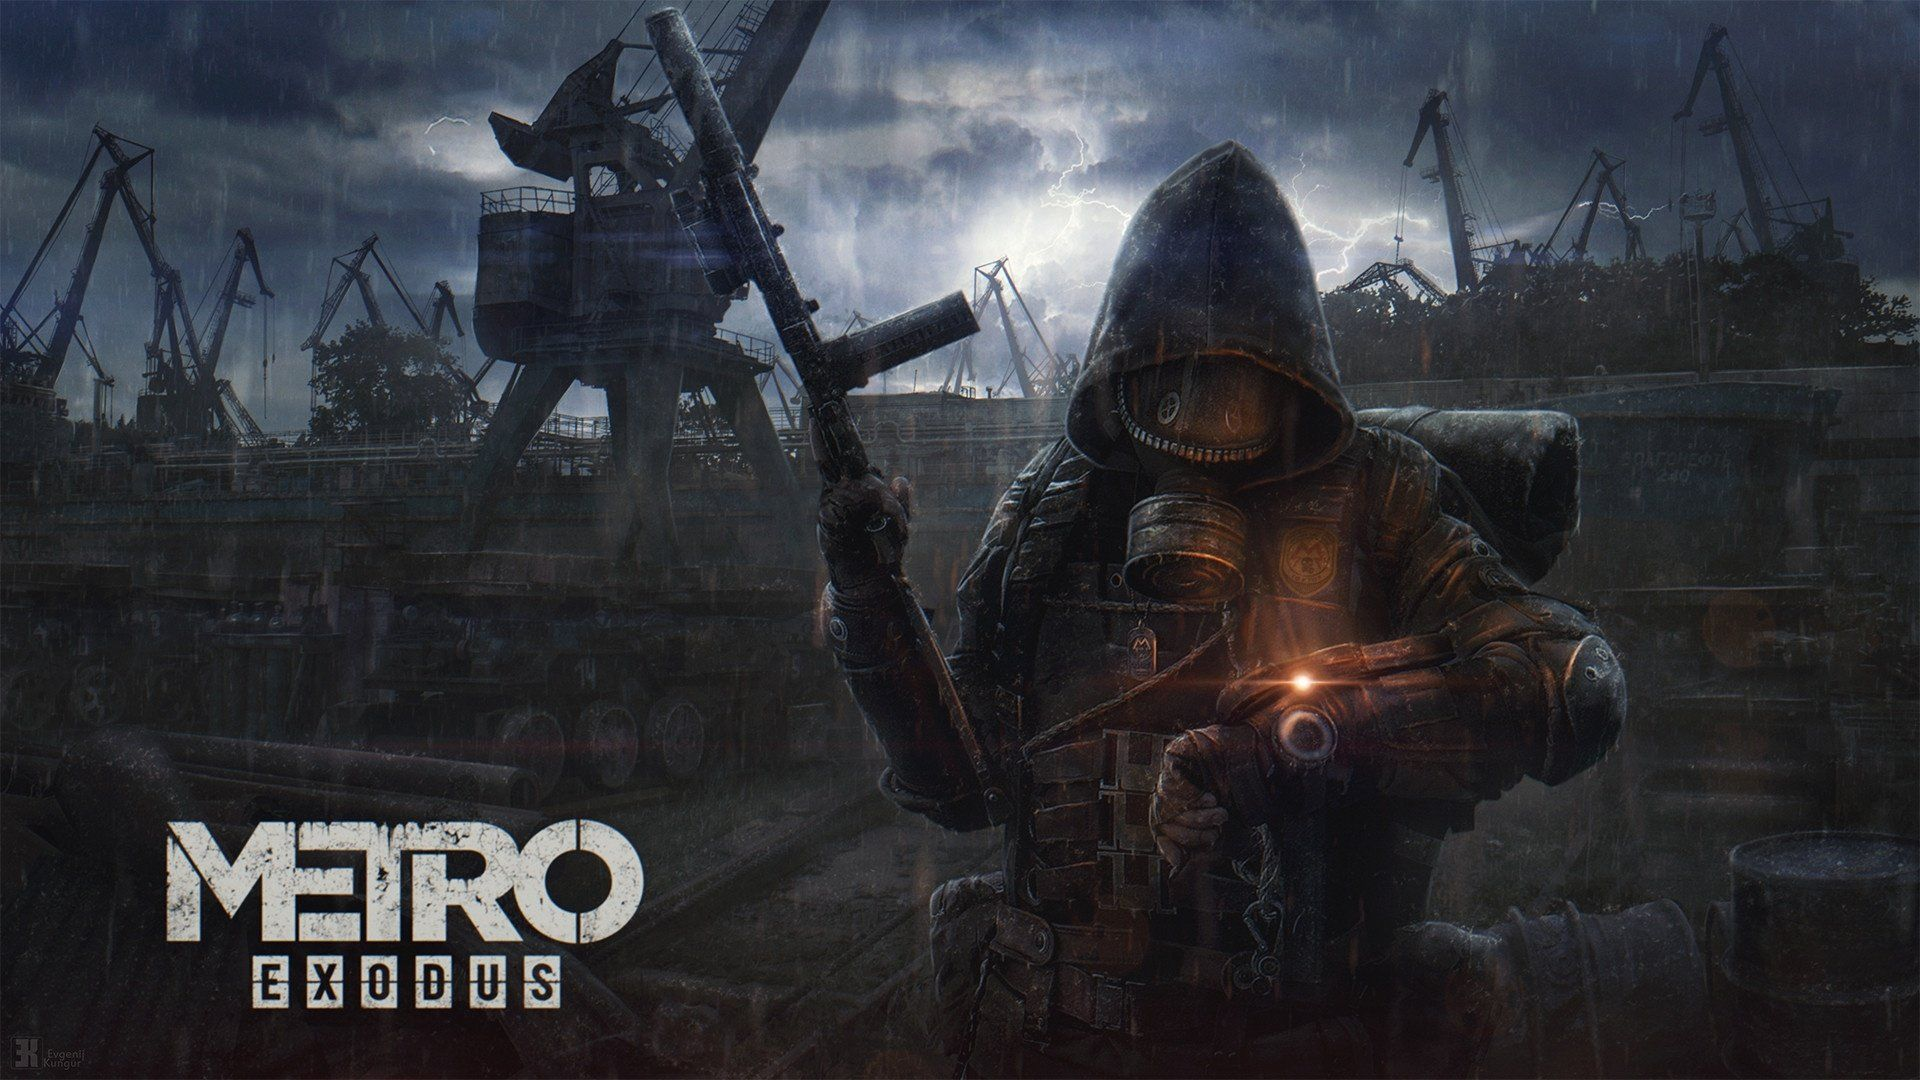 1920x1080 Metro Exodus Wallpaper Background Image View Download Comment And Rate Wallpaper Abyss Metro Last Light Dark Art Illustrations Metro 2033